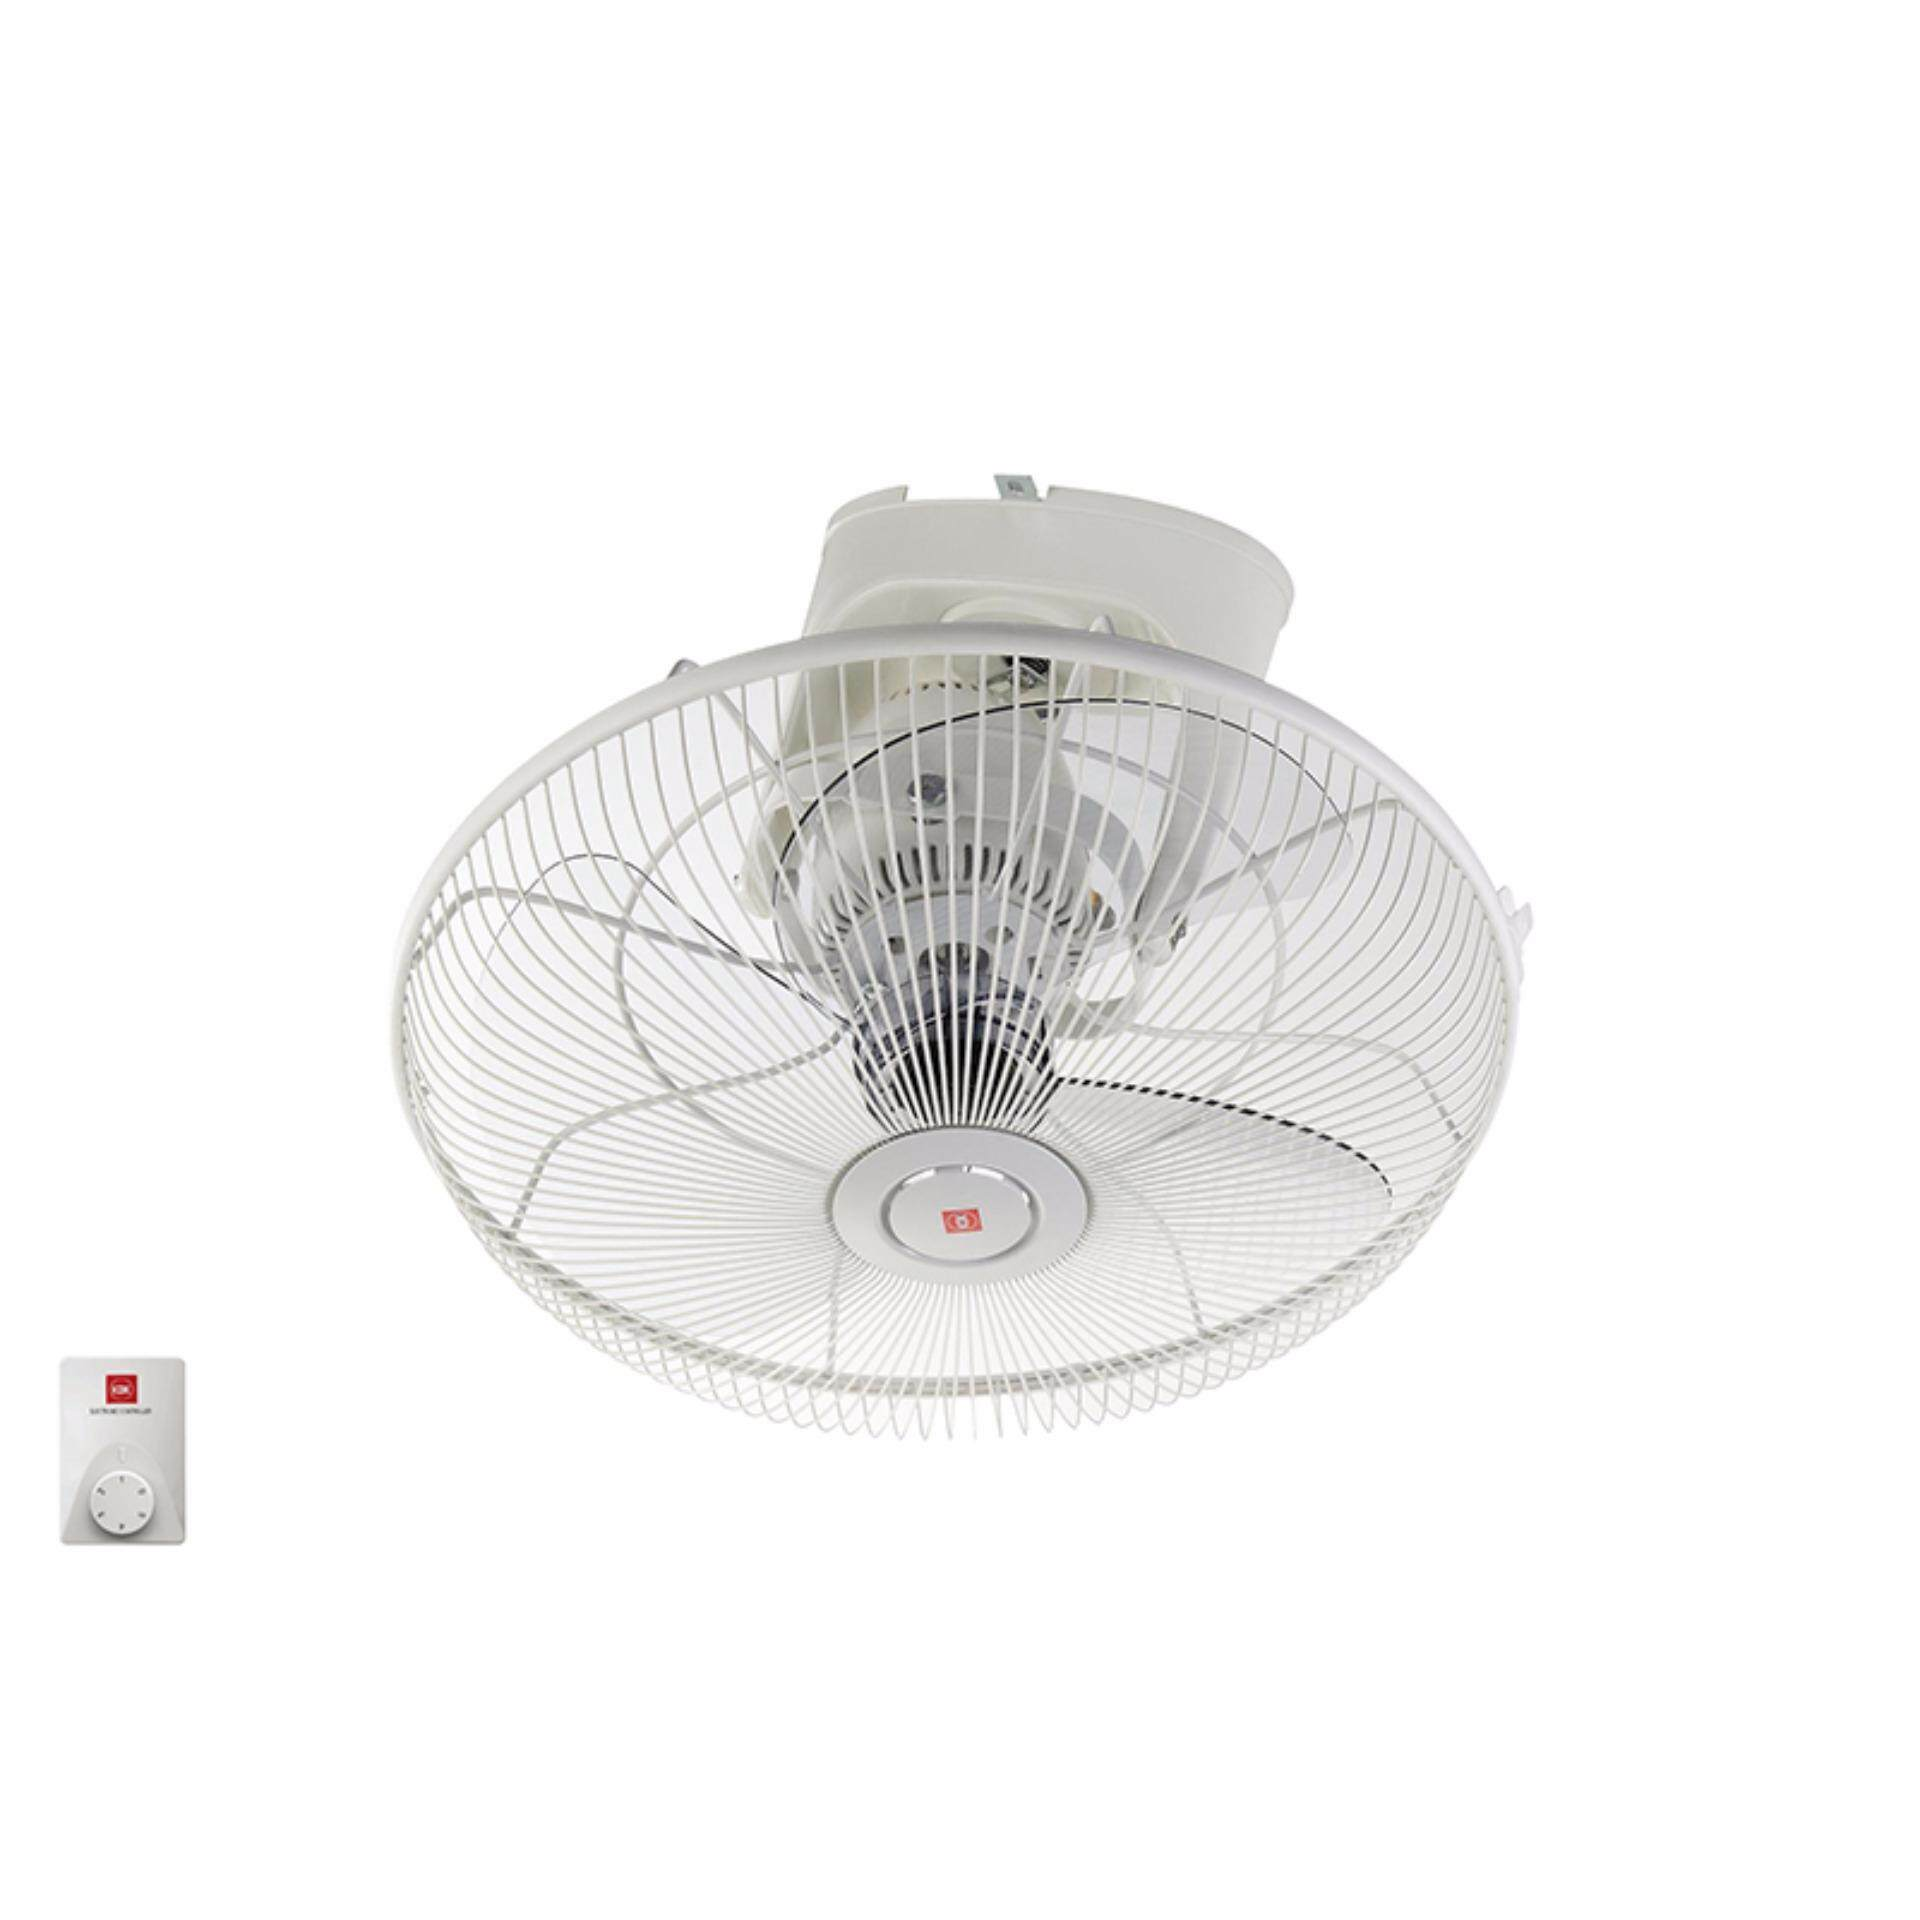 "KDK 16"" Auto Fan KQ409"